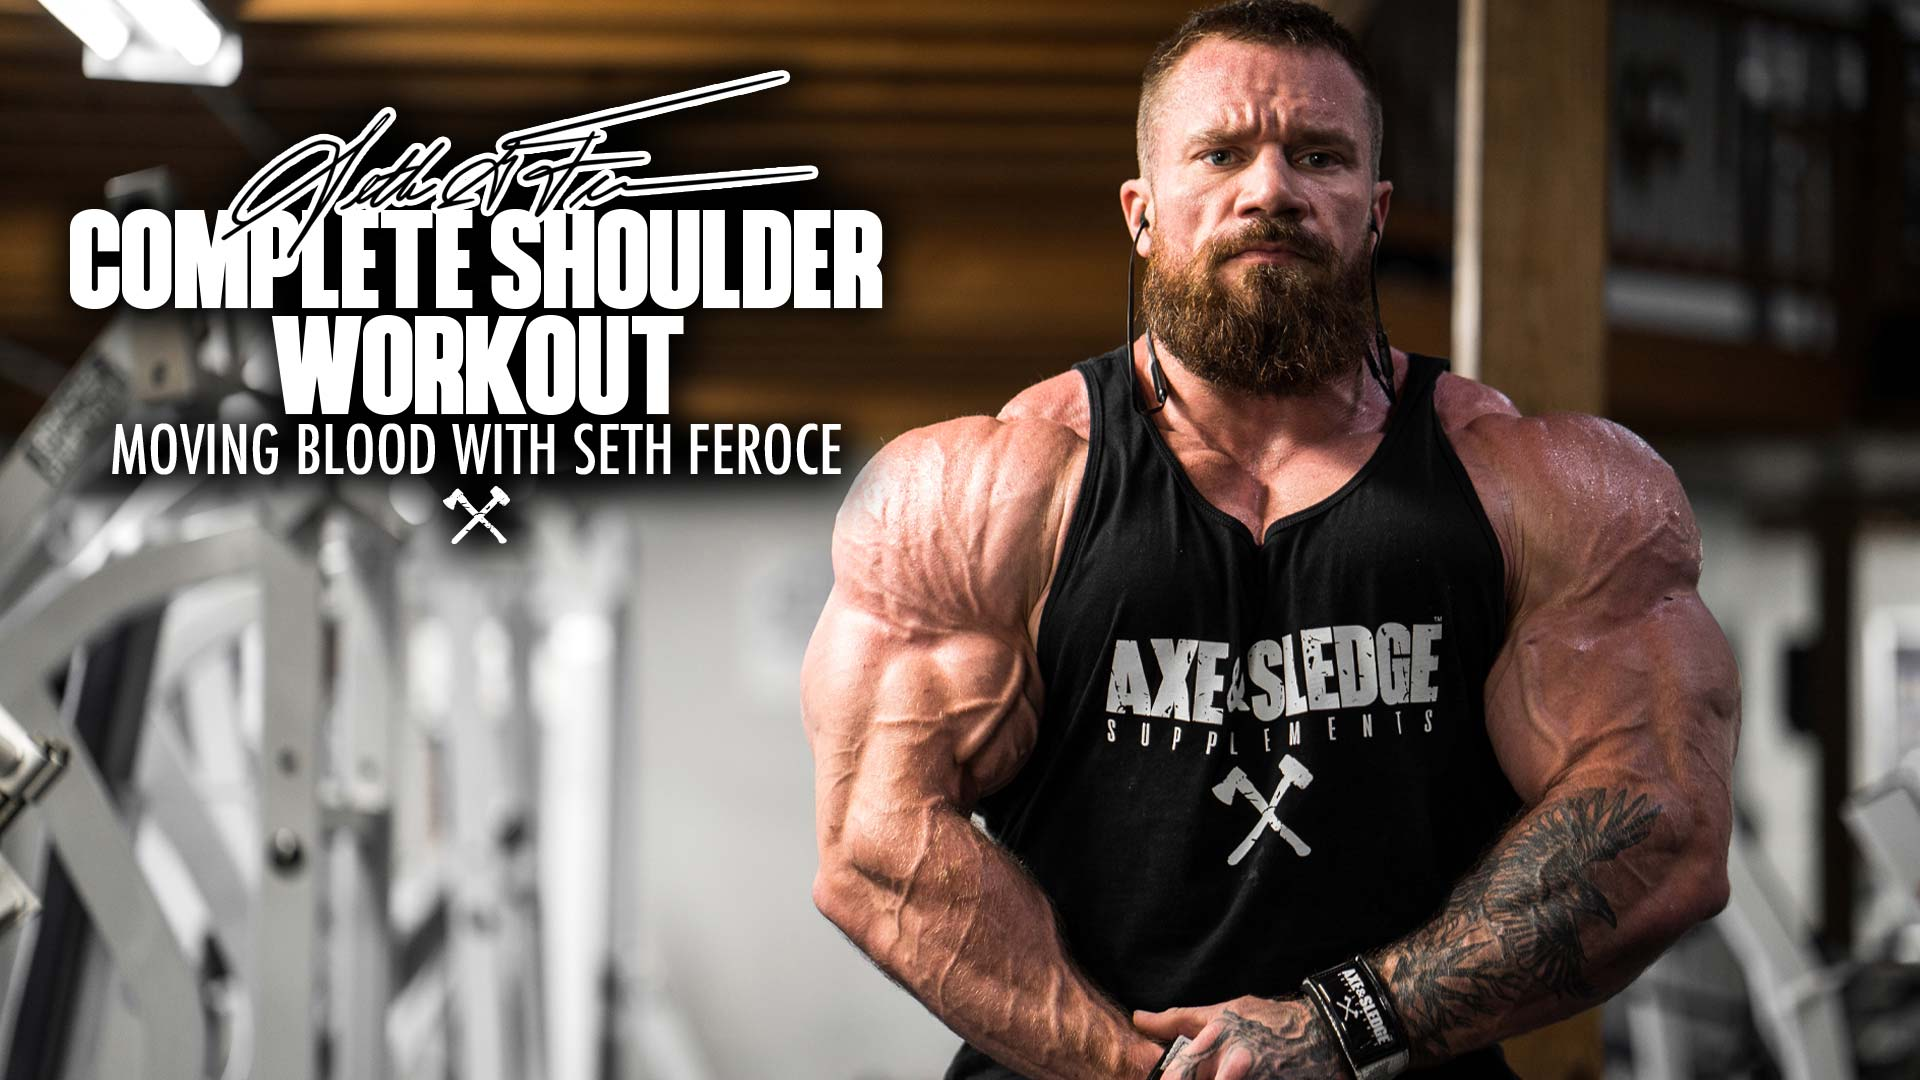 TRAINING TIPS - Axe & Sledge Supplements